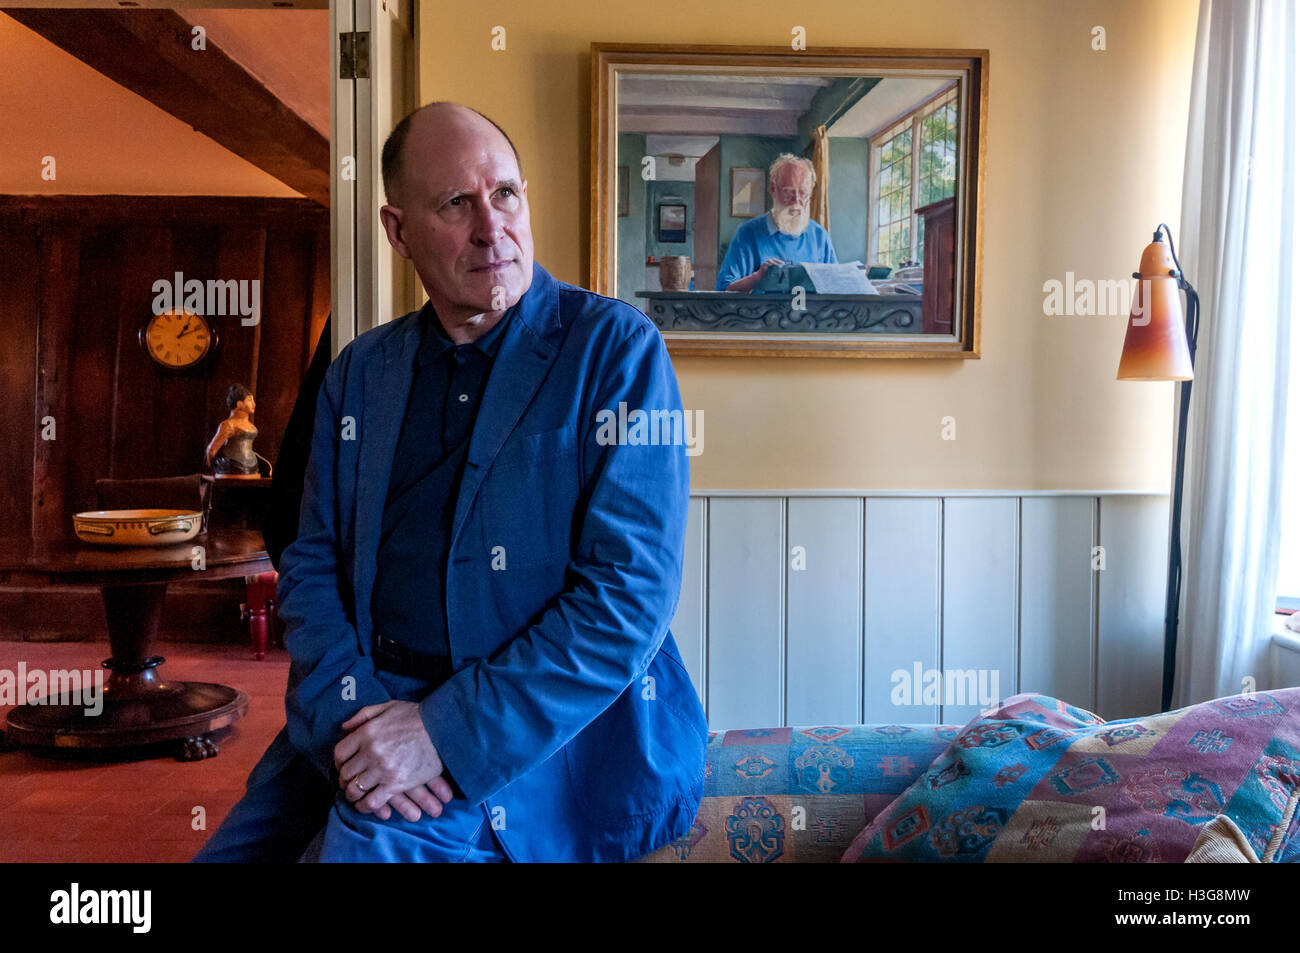 Screenplay writer and author William Nicholson, at his home in Barcombe, near Lewes, East Sussex. - Stock Image